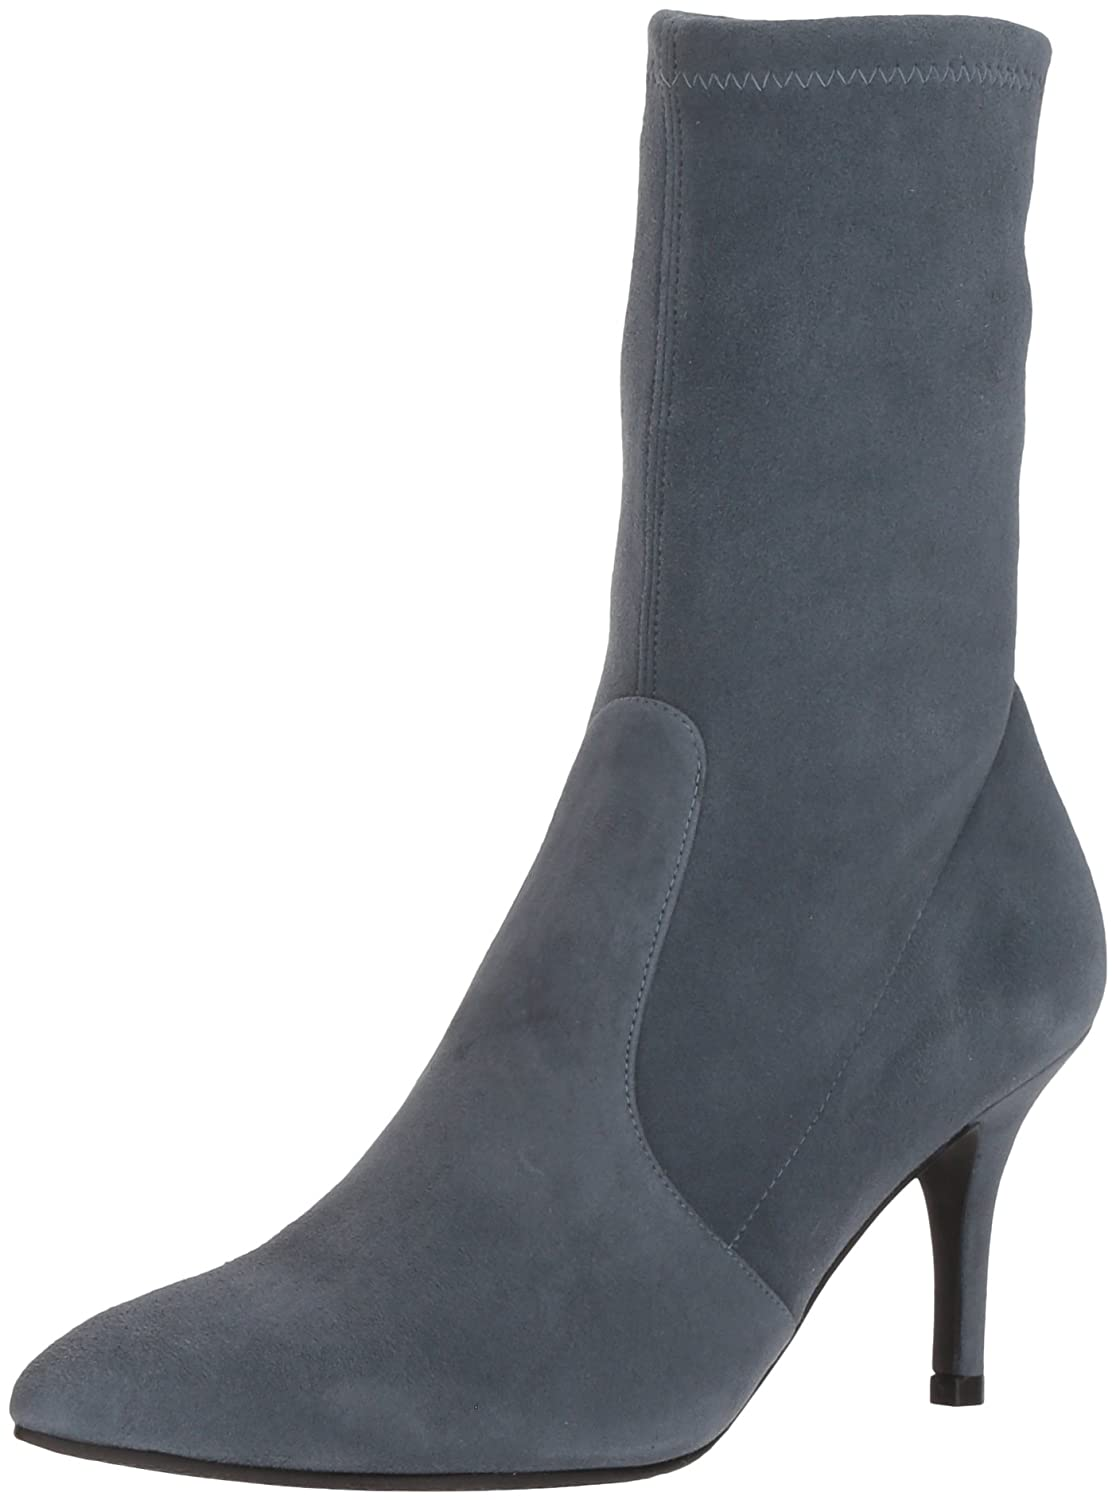 Stuart Weitzman Women's Cling Ankle Boot B07954M5Z4 8 B(M) US|Denim Suede